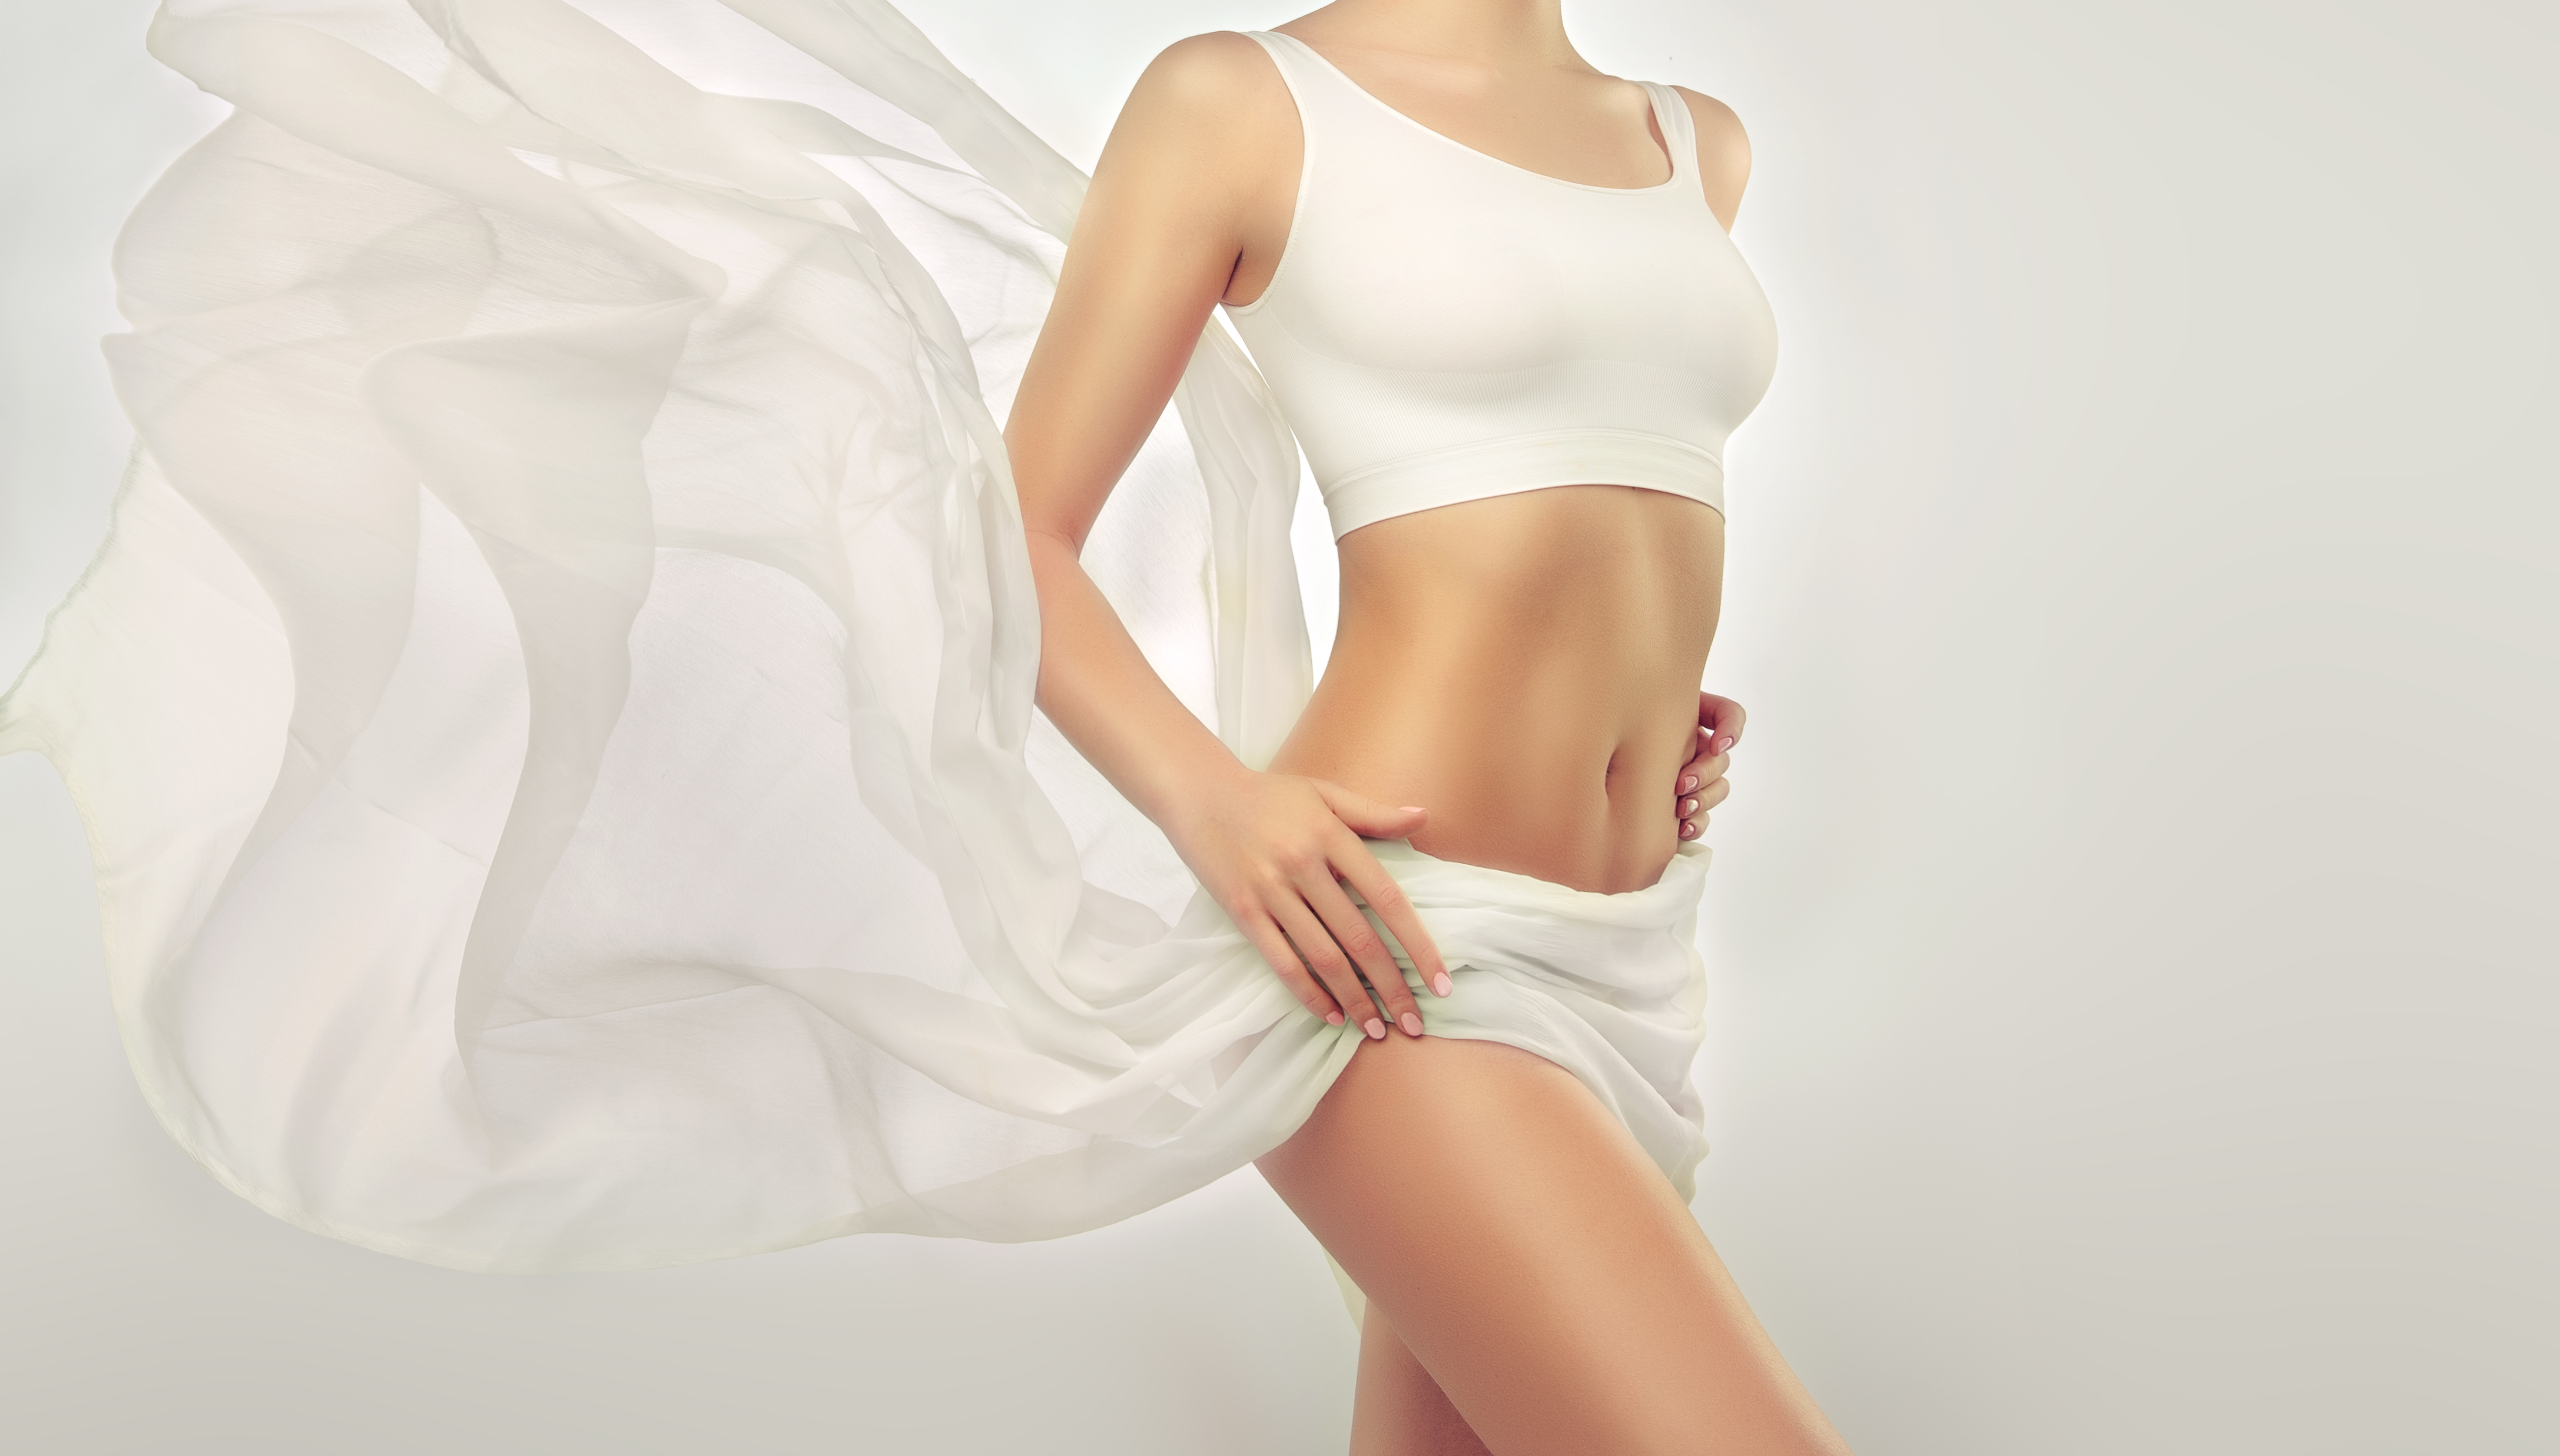 Perfect slim toned young body of the girl .jpg An example of sports , fitness or plastic surgery and